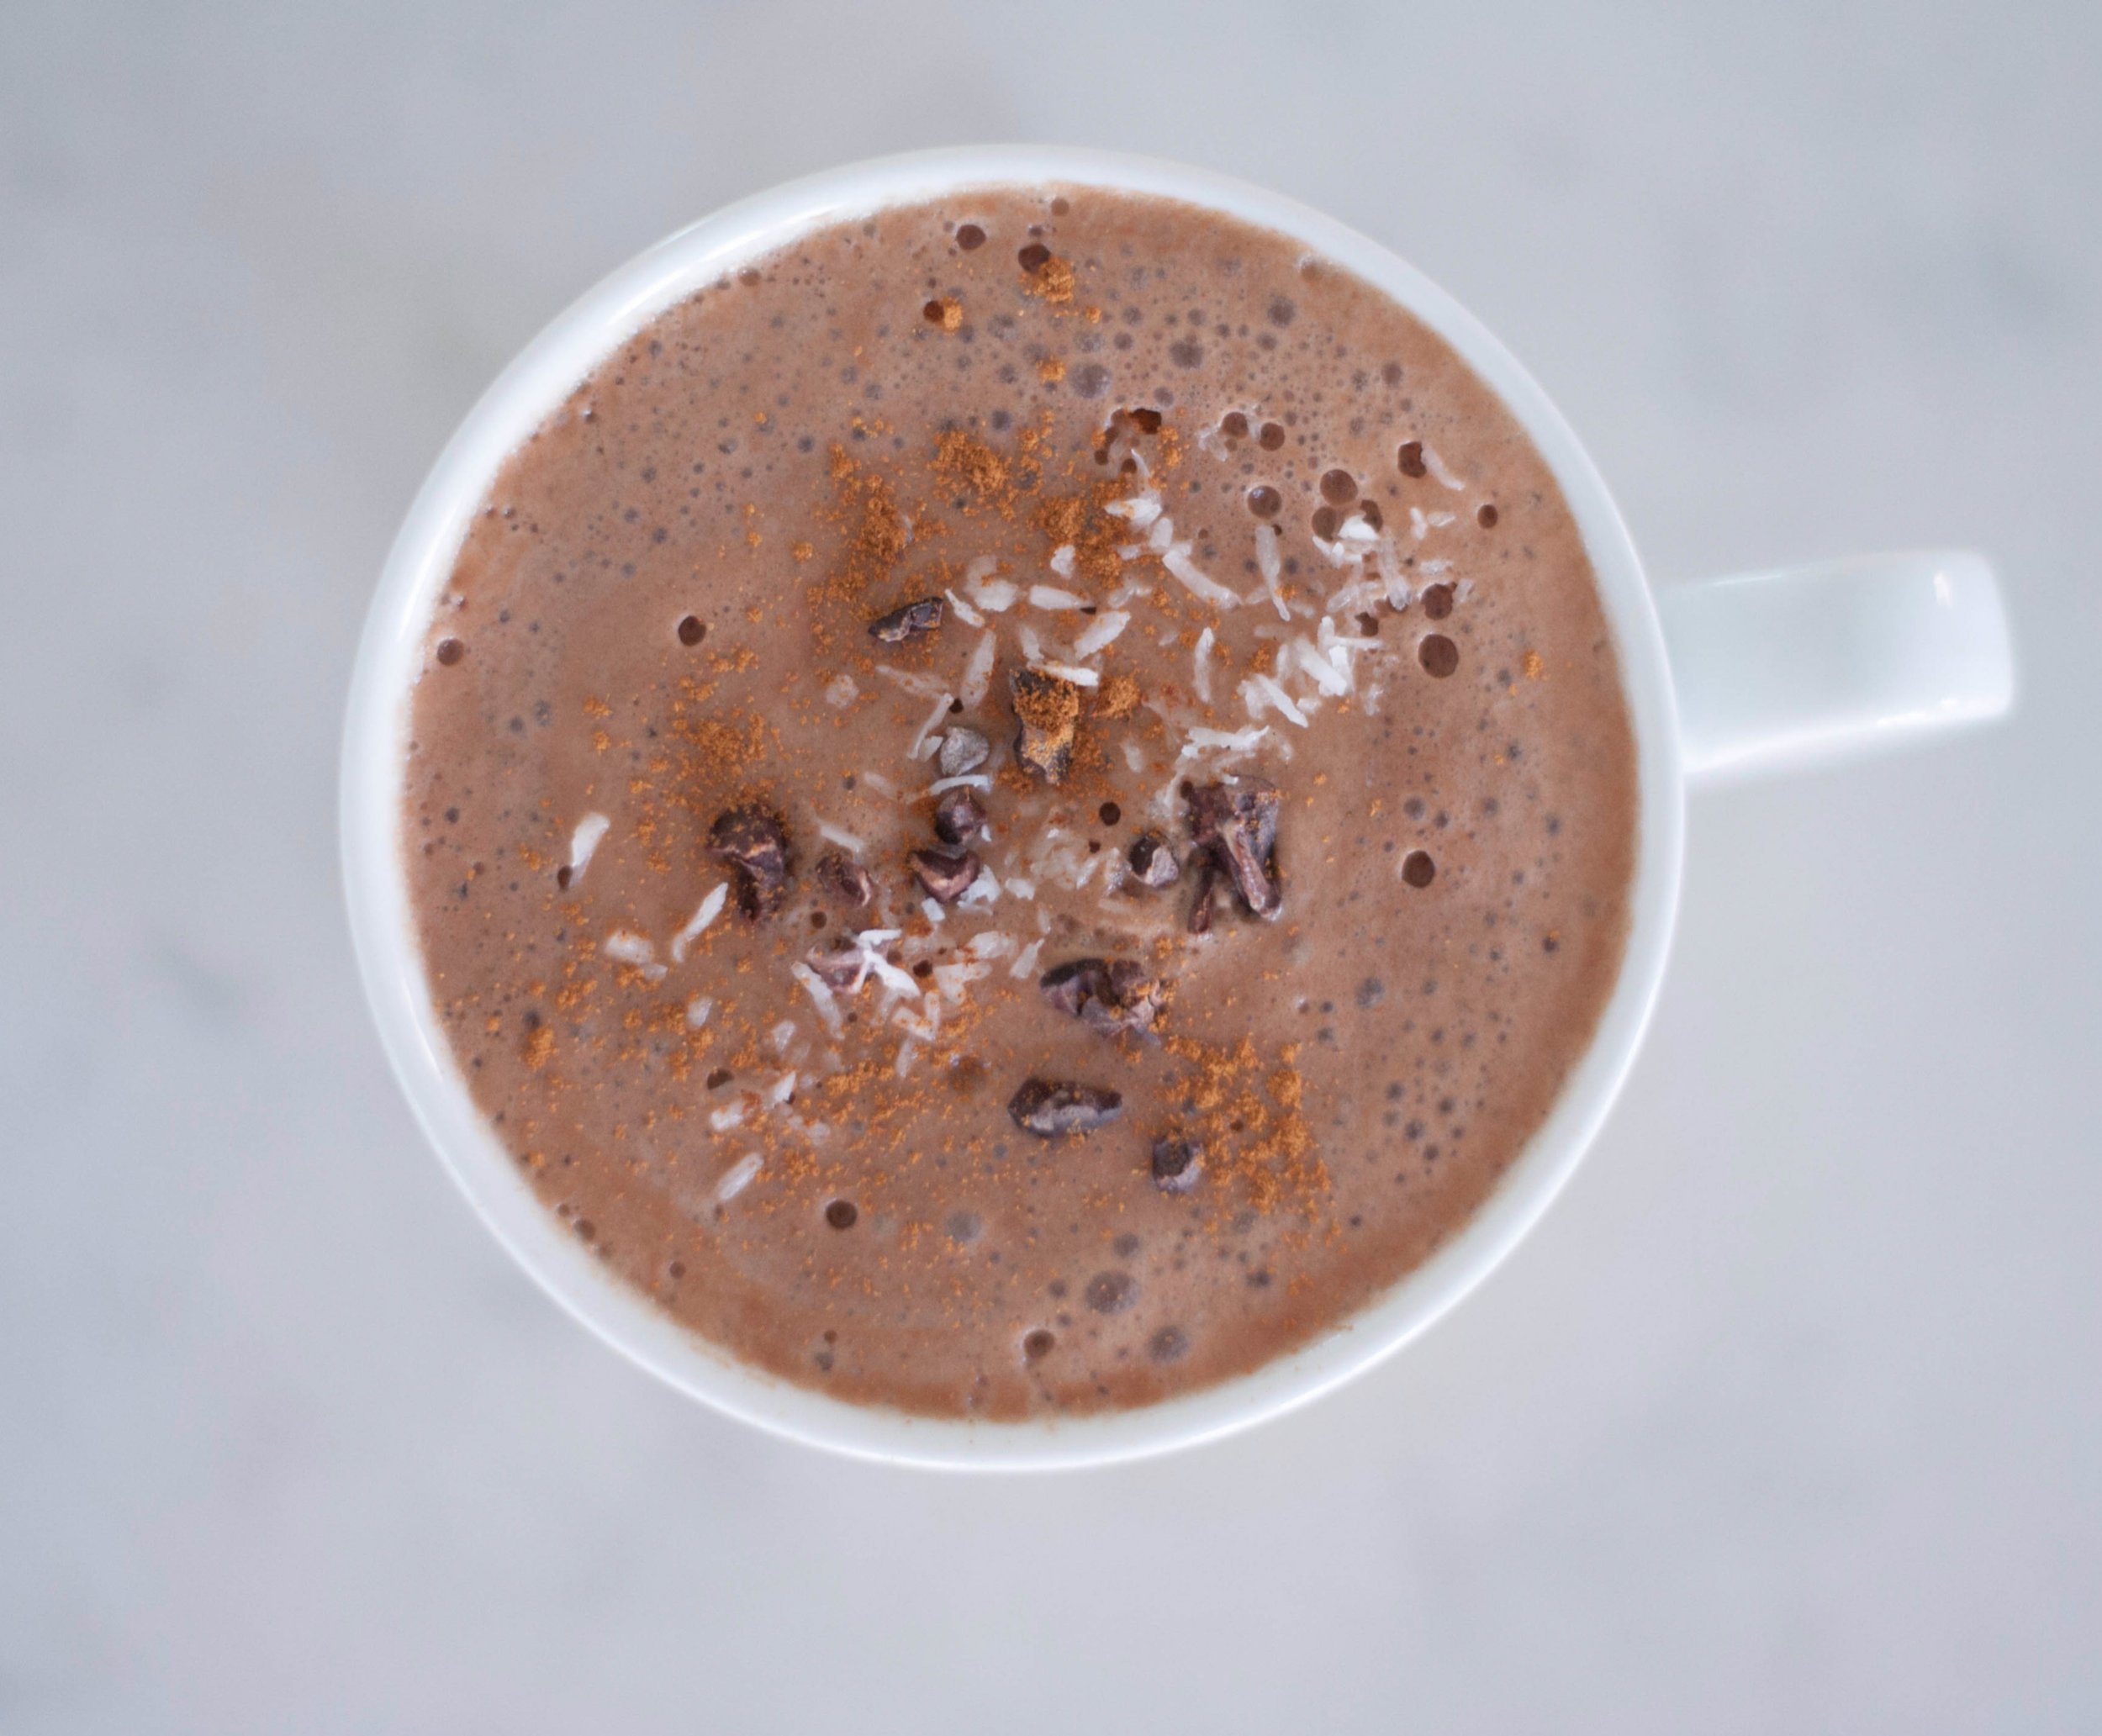 Erin Stanczyk | Lifestyle Design | eat.move.rest. | MY DAIRY-FREE, FROTHY HOT COCOA RECIPE